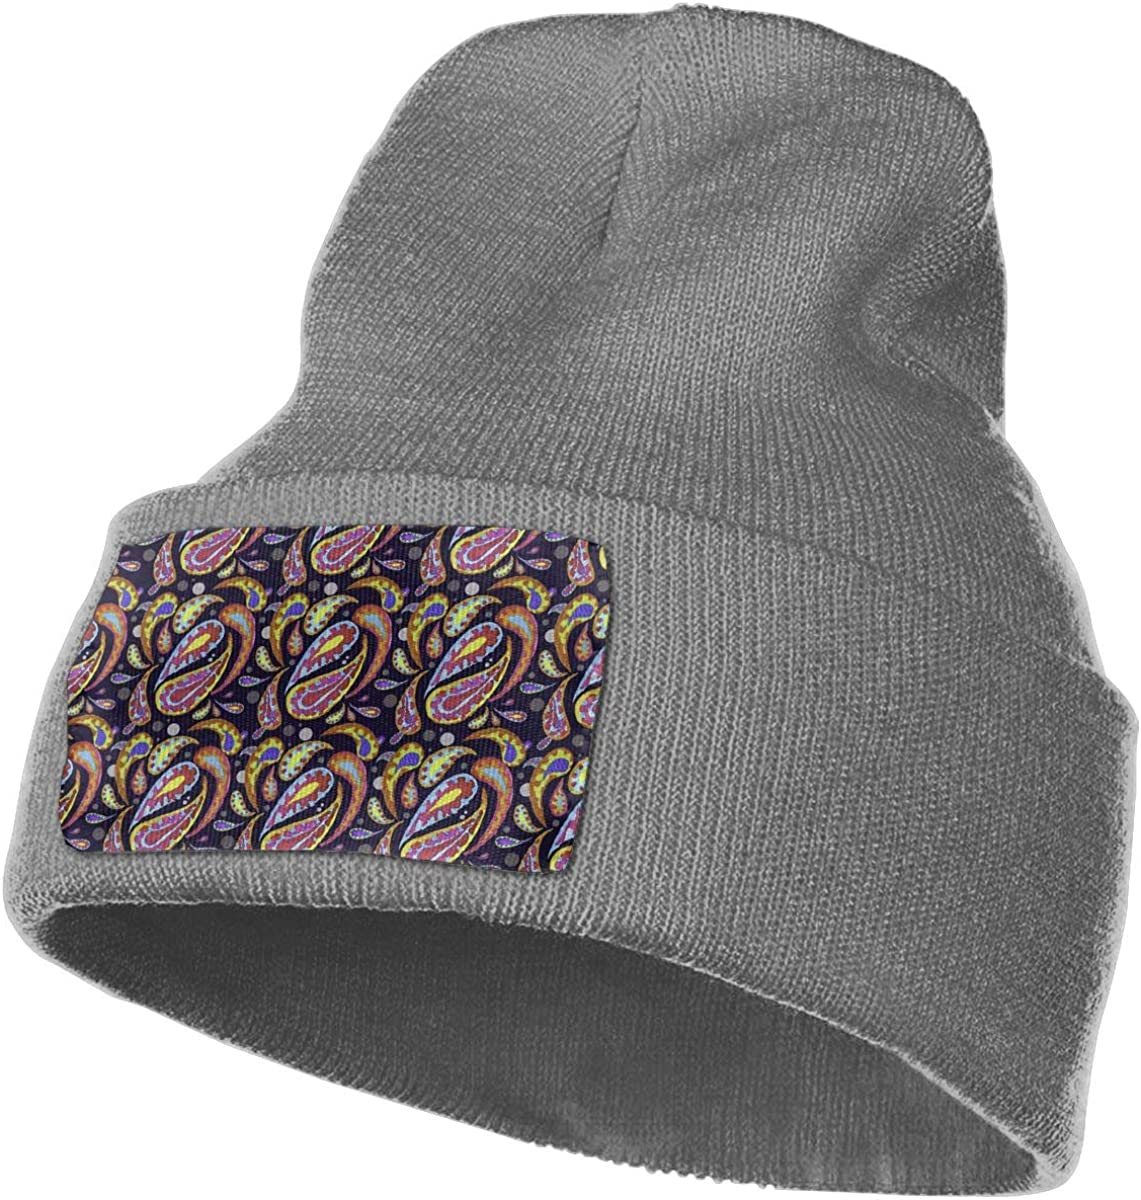 SARMY Paisley Winter Wool Cap Warm Beanies Knitted Hat